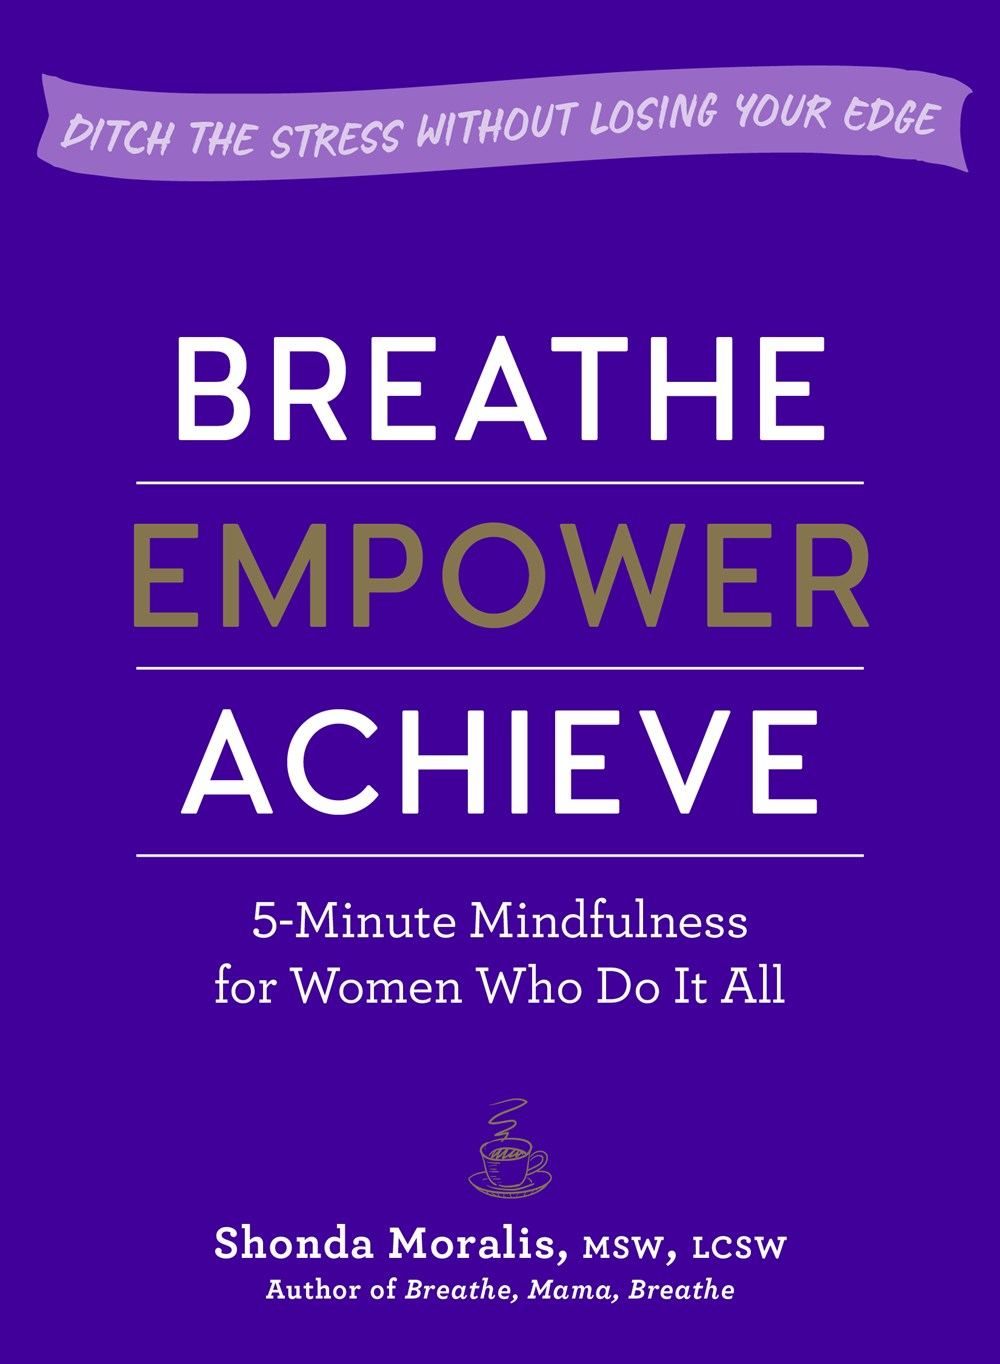 """Breathe, Empower, Achieve - For so many women, """"work–life balance"""" is a myth. And when you're already juggling a career, personal life, family, a smidgen of self-care, and the occasional need to sleep—""""mindfulness"""" can sound like just another thing to do.But if you take five minutes for mindfulness now and then, it may not only save your sanity—but also springboard your success. If you think you don't have time for mindfulness, this book is definitely for you.Read more here!"""